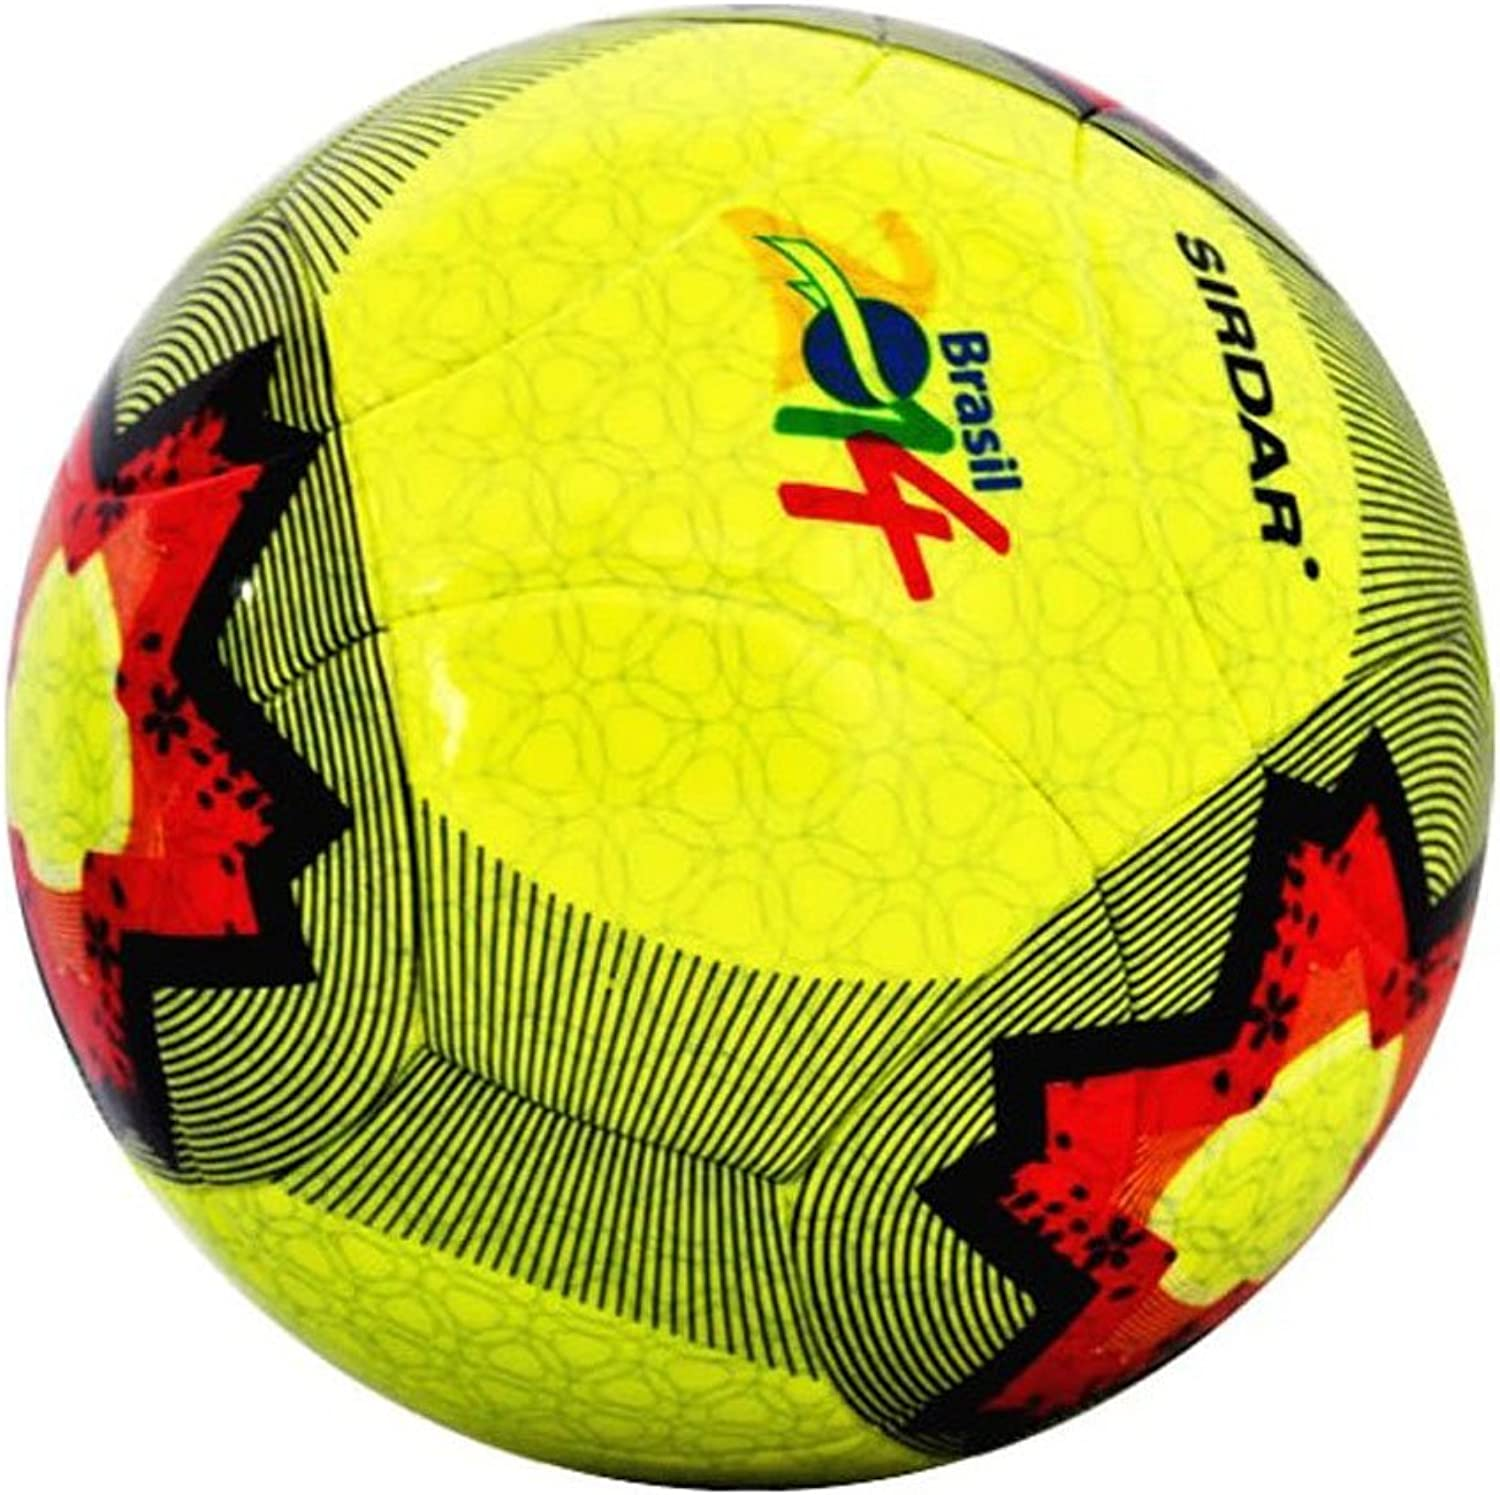 Red Stars Pattern Training and Playing Soccer Ball for Adults Size 5